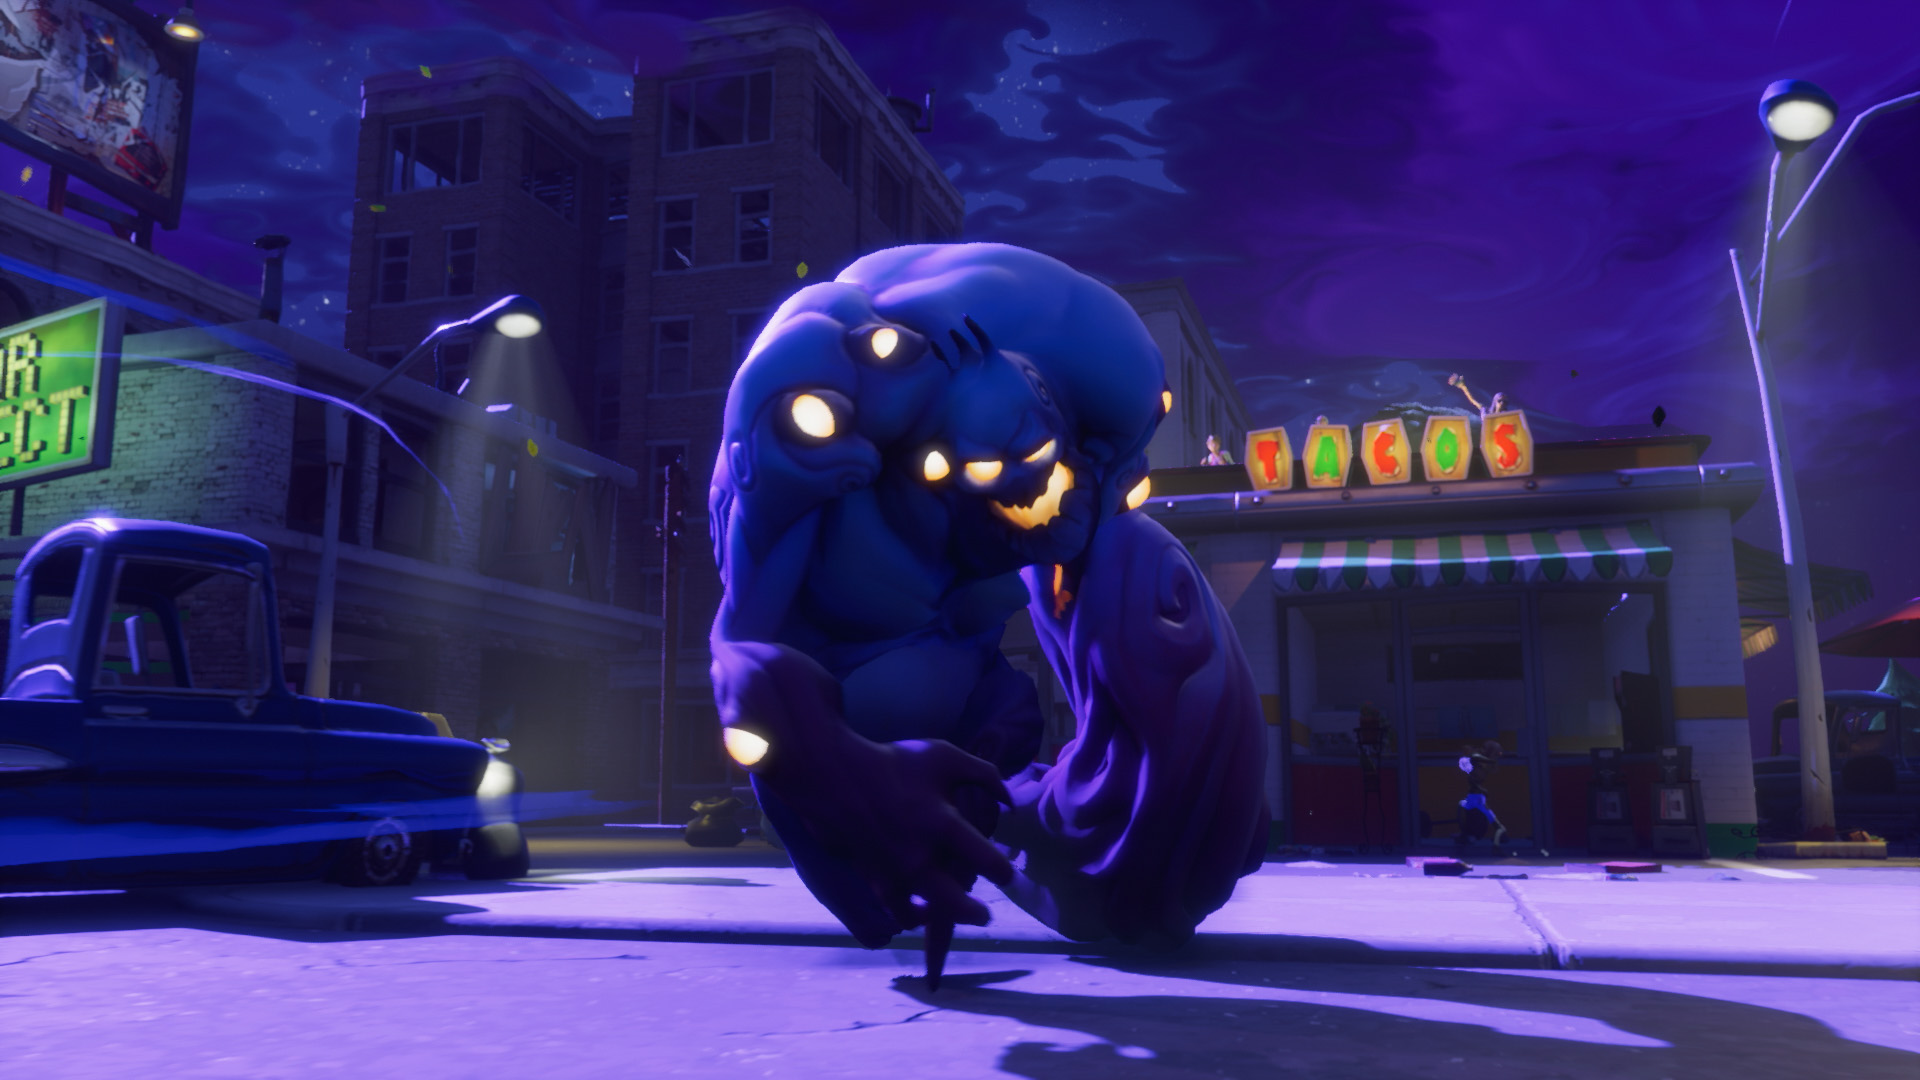 Fortnite [Video Game] Wallpaper HD 1920x1080